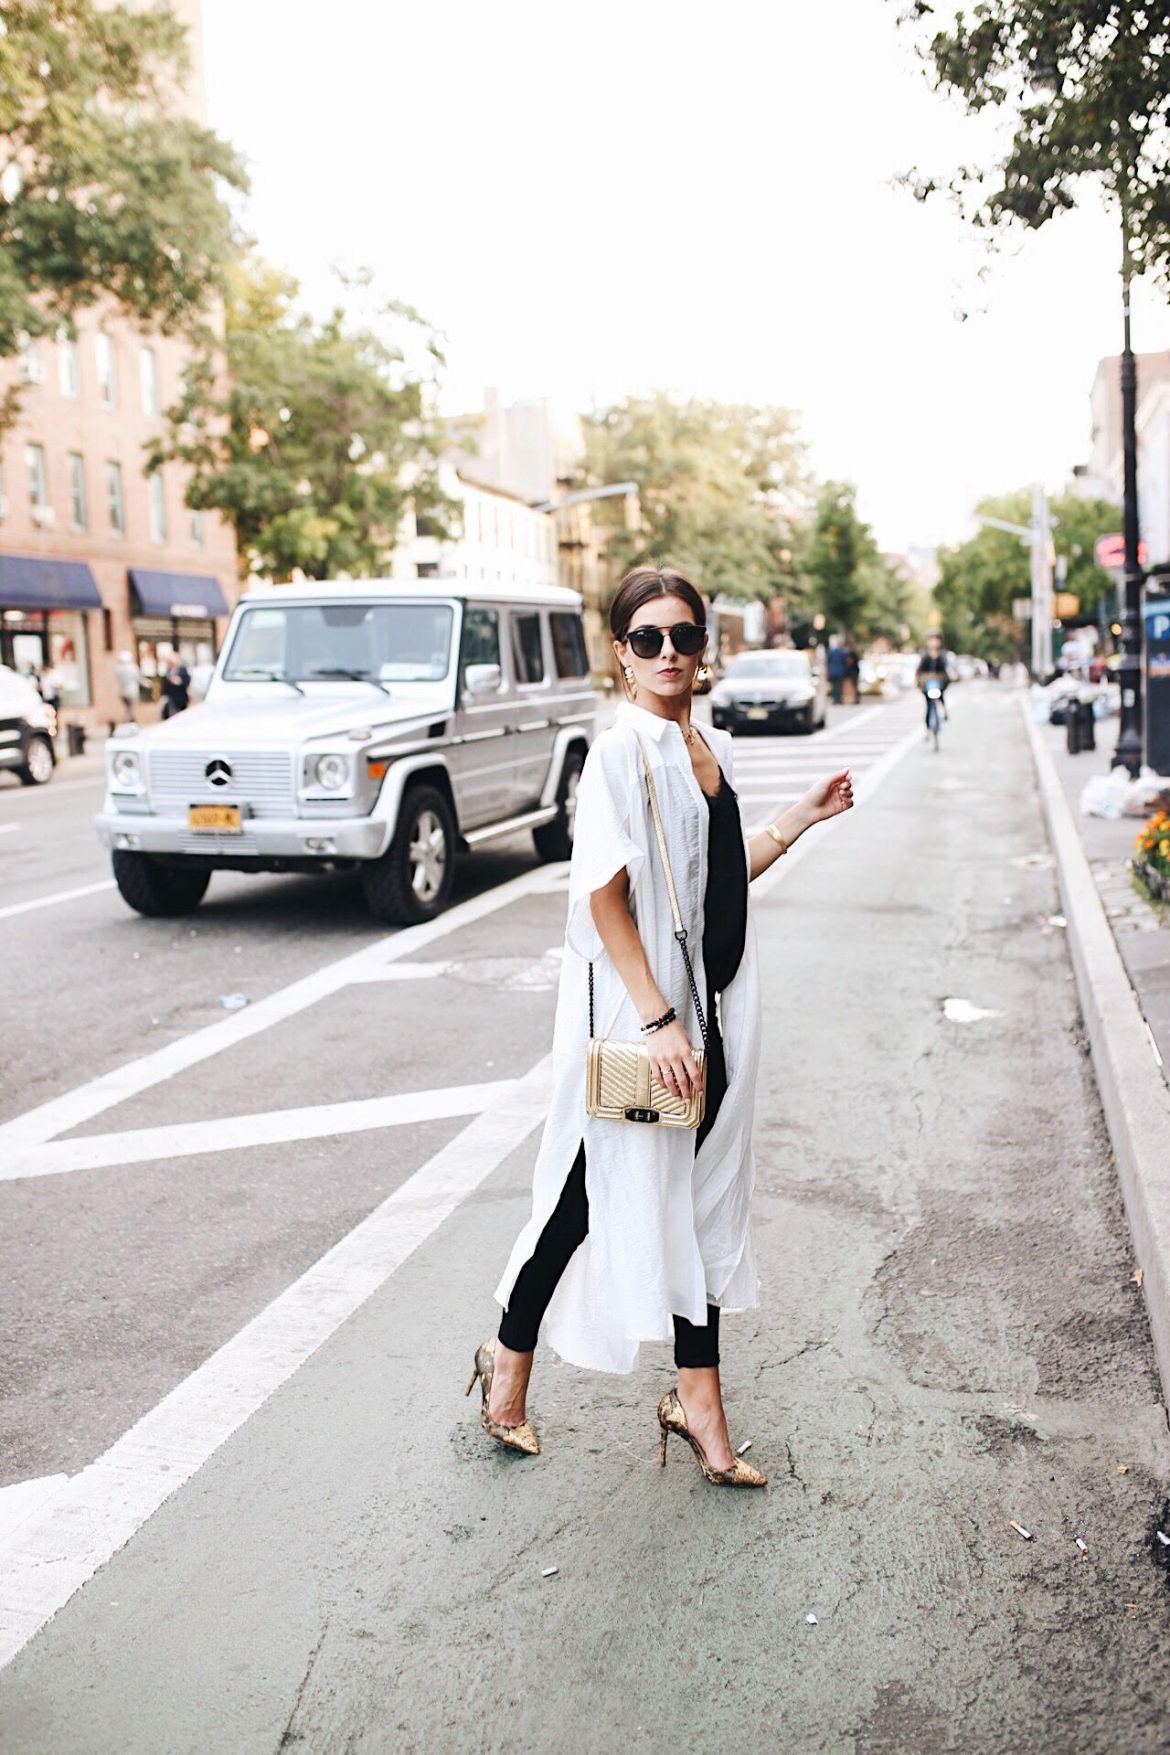 New York Fashion Week 2017 by Ashley Hodges of Ashley Terk // street style // nyfw // 2017 // women's fashion // free people // diff eyewear // g wagonNew York Fashion Week 2017 and Outfit Details featured by popular Los Angeles fashion blogger, Ashley Hodges